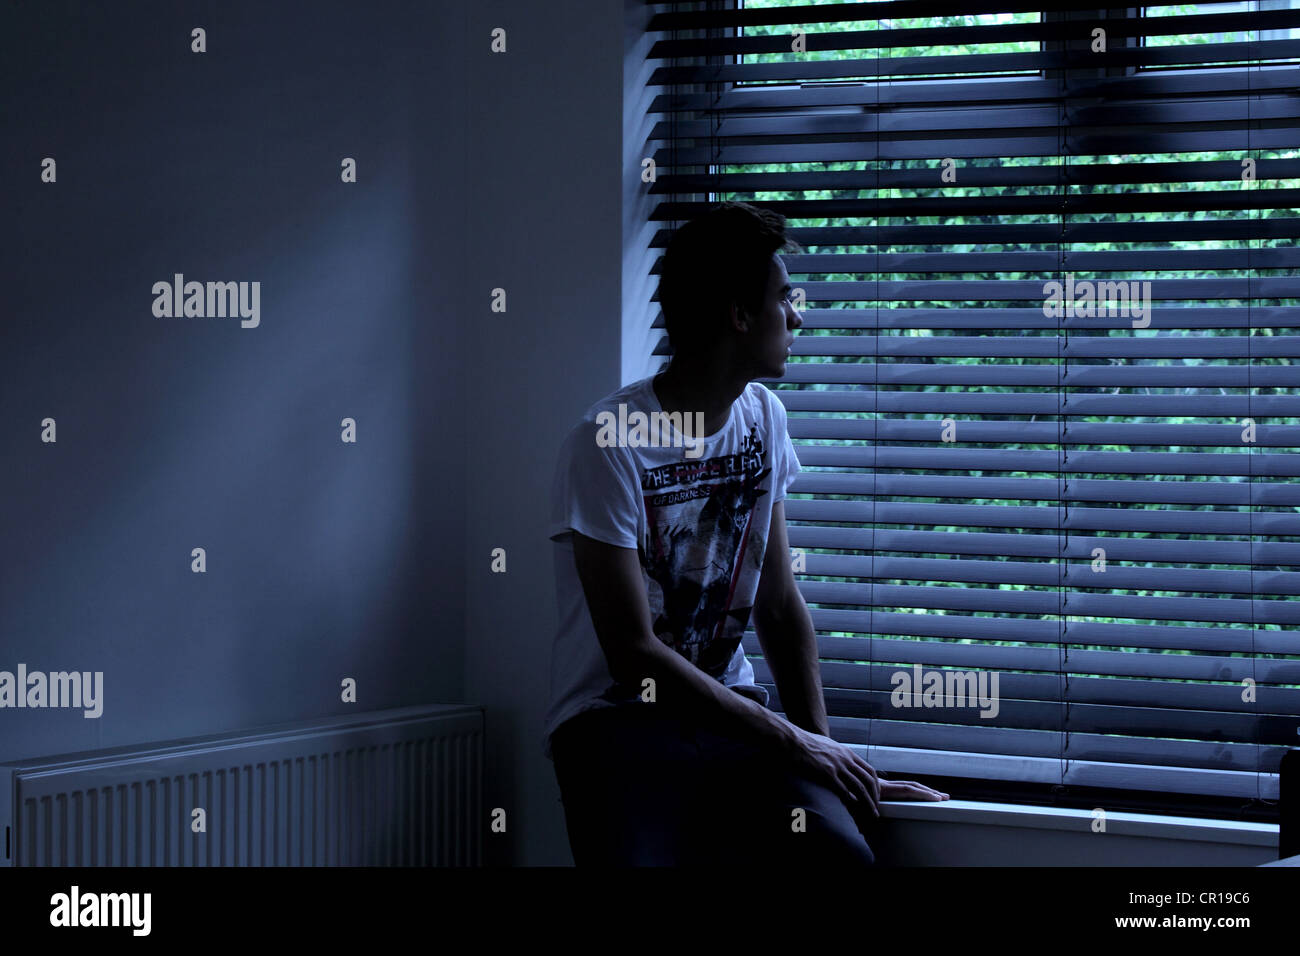 Young male sitting in a dark room looking out through a window blind. Model and property (owned by photographer) - Stock Image